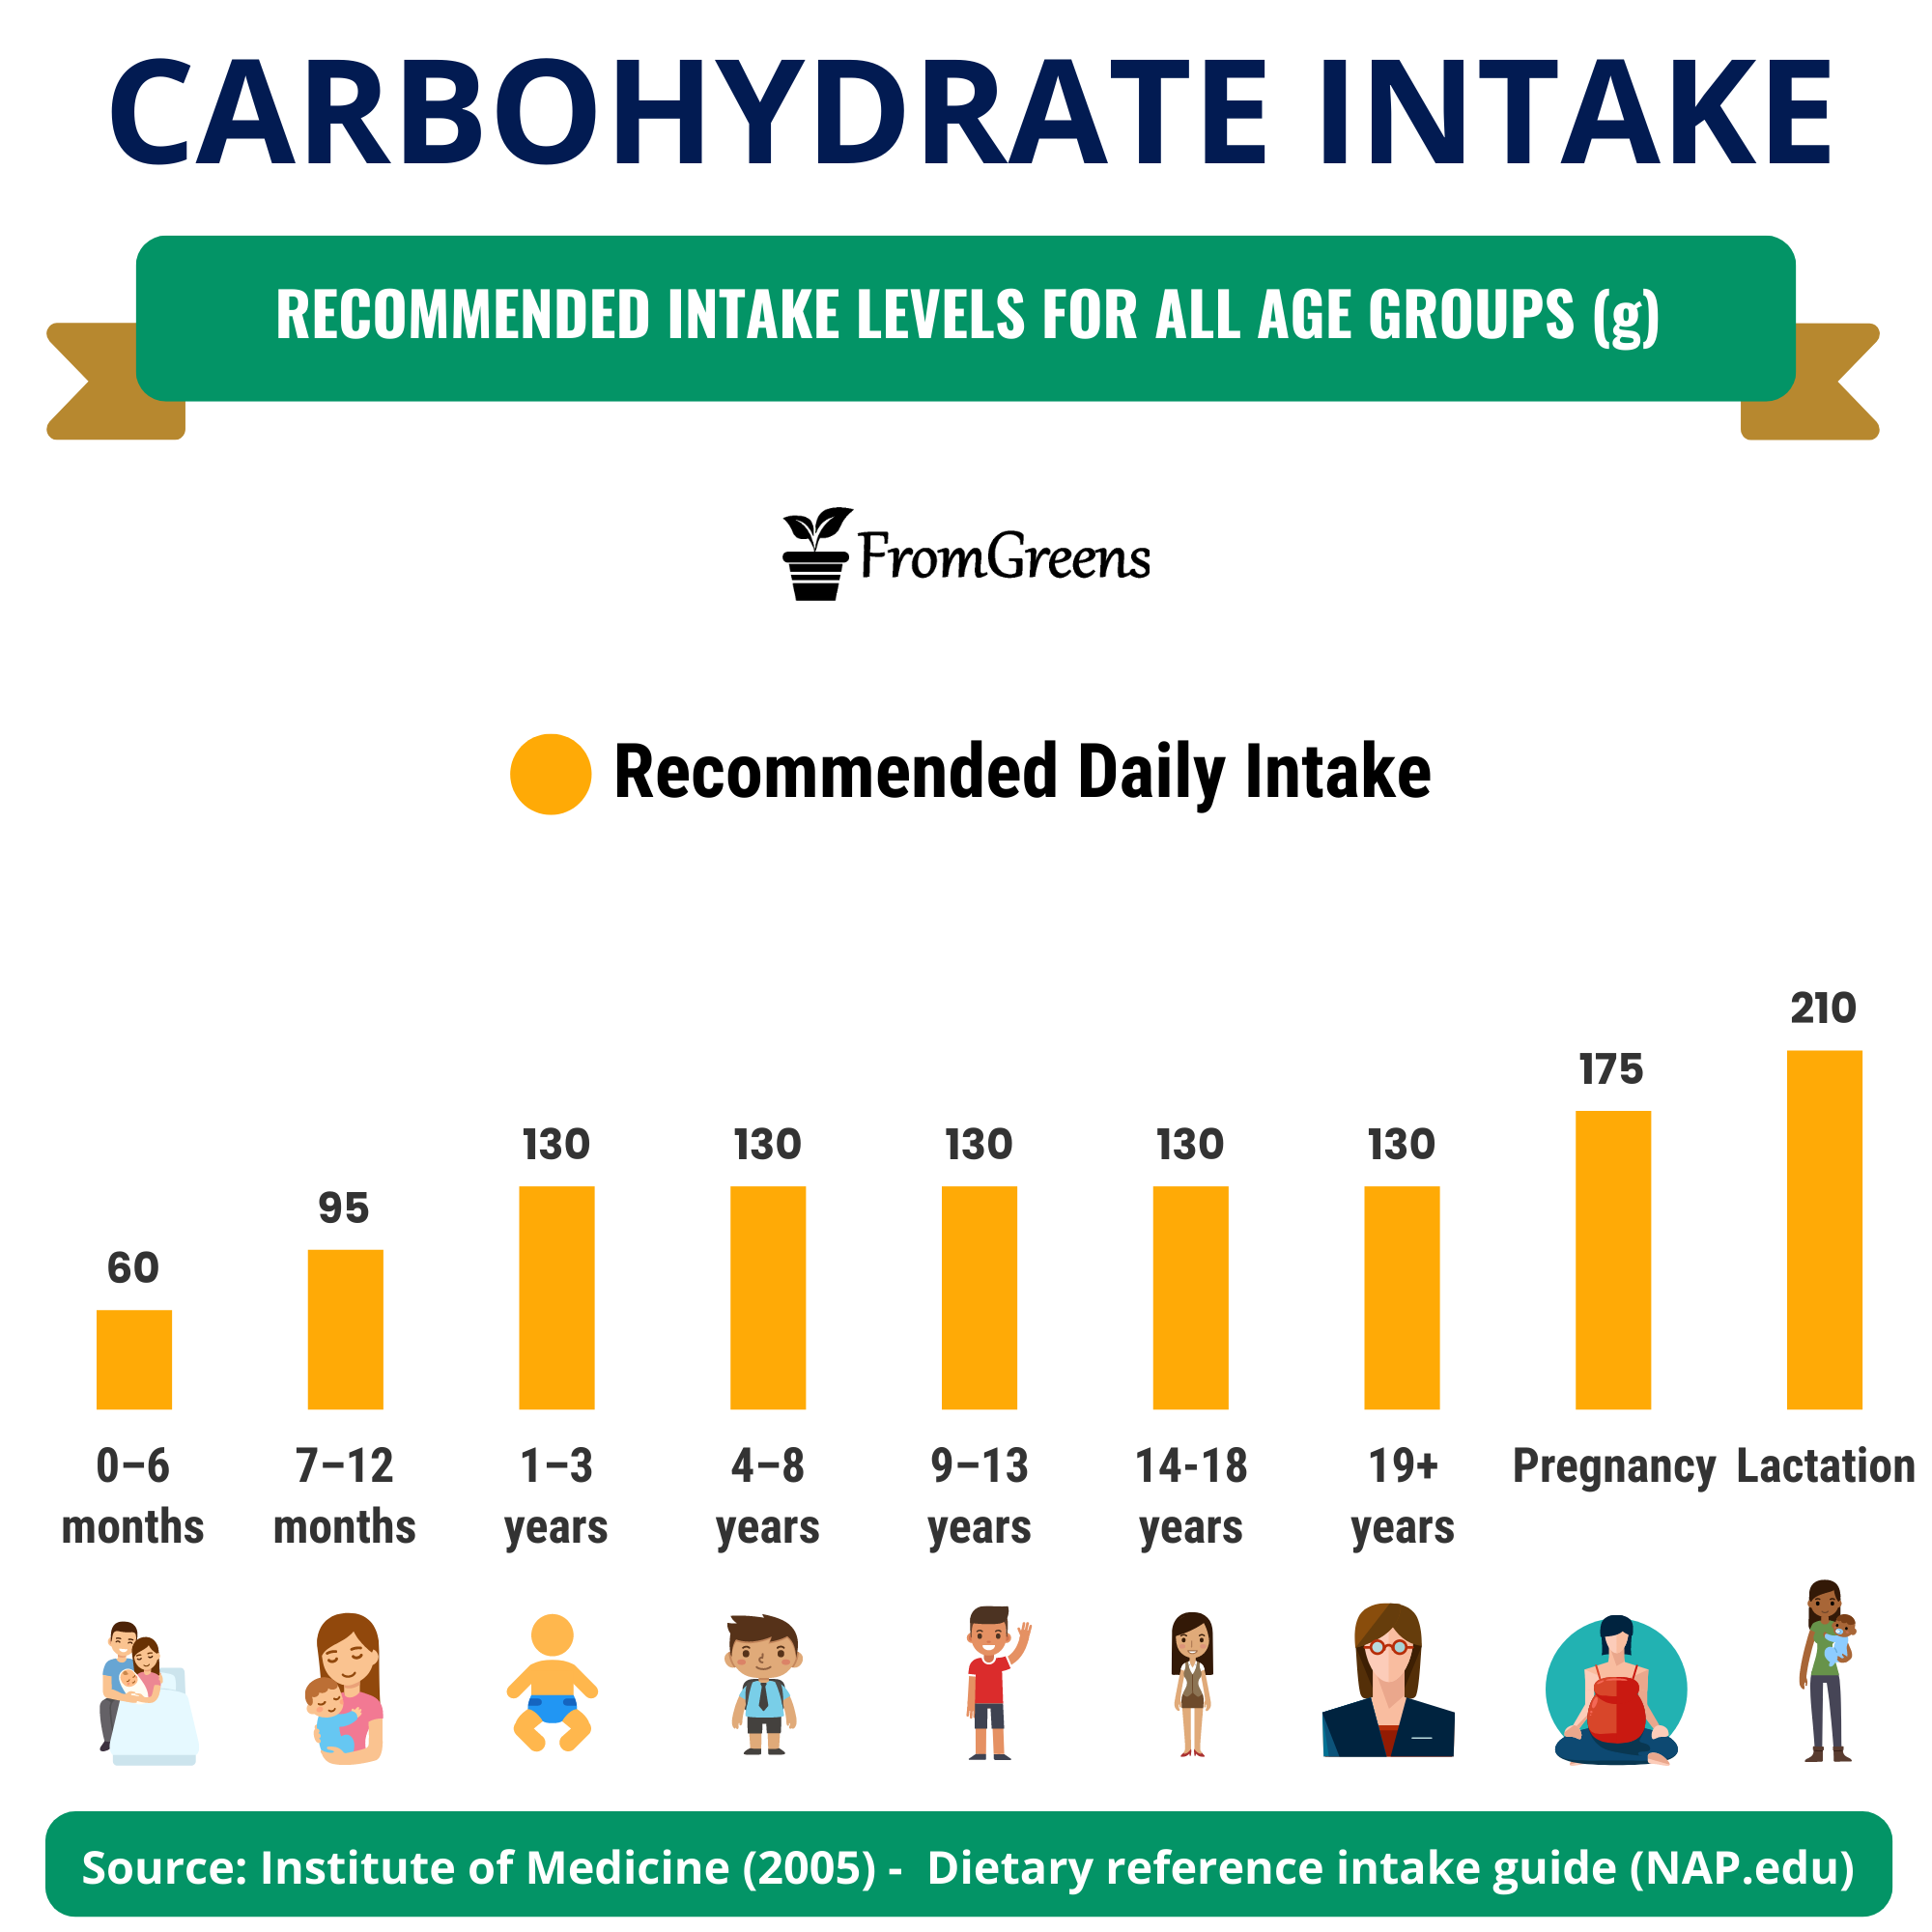 how much carbohydrate is recommended daily